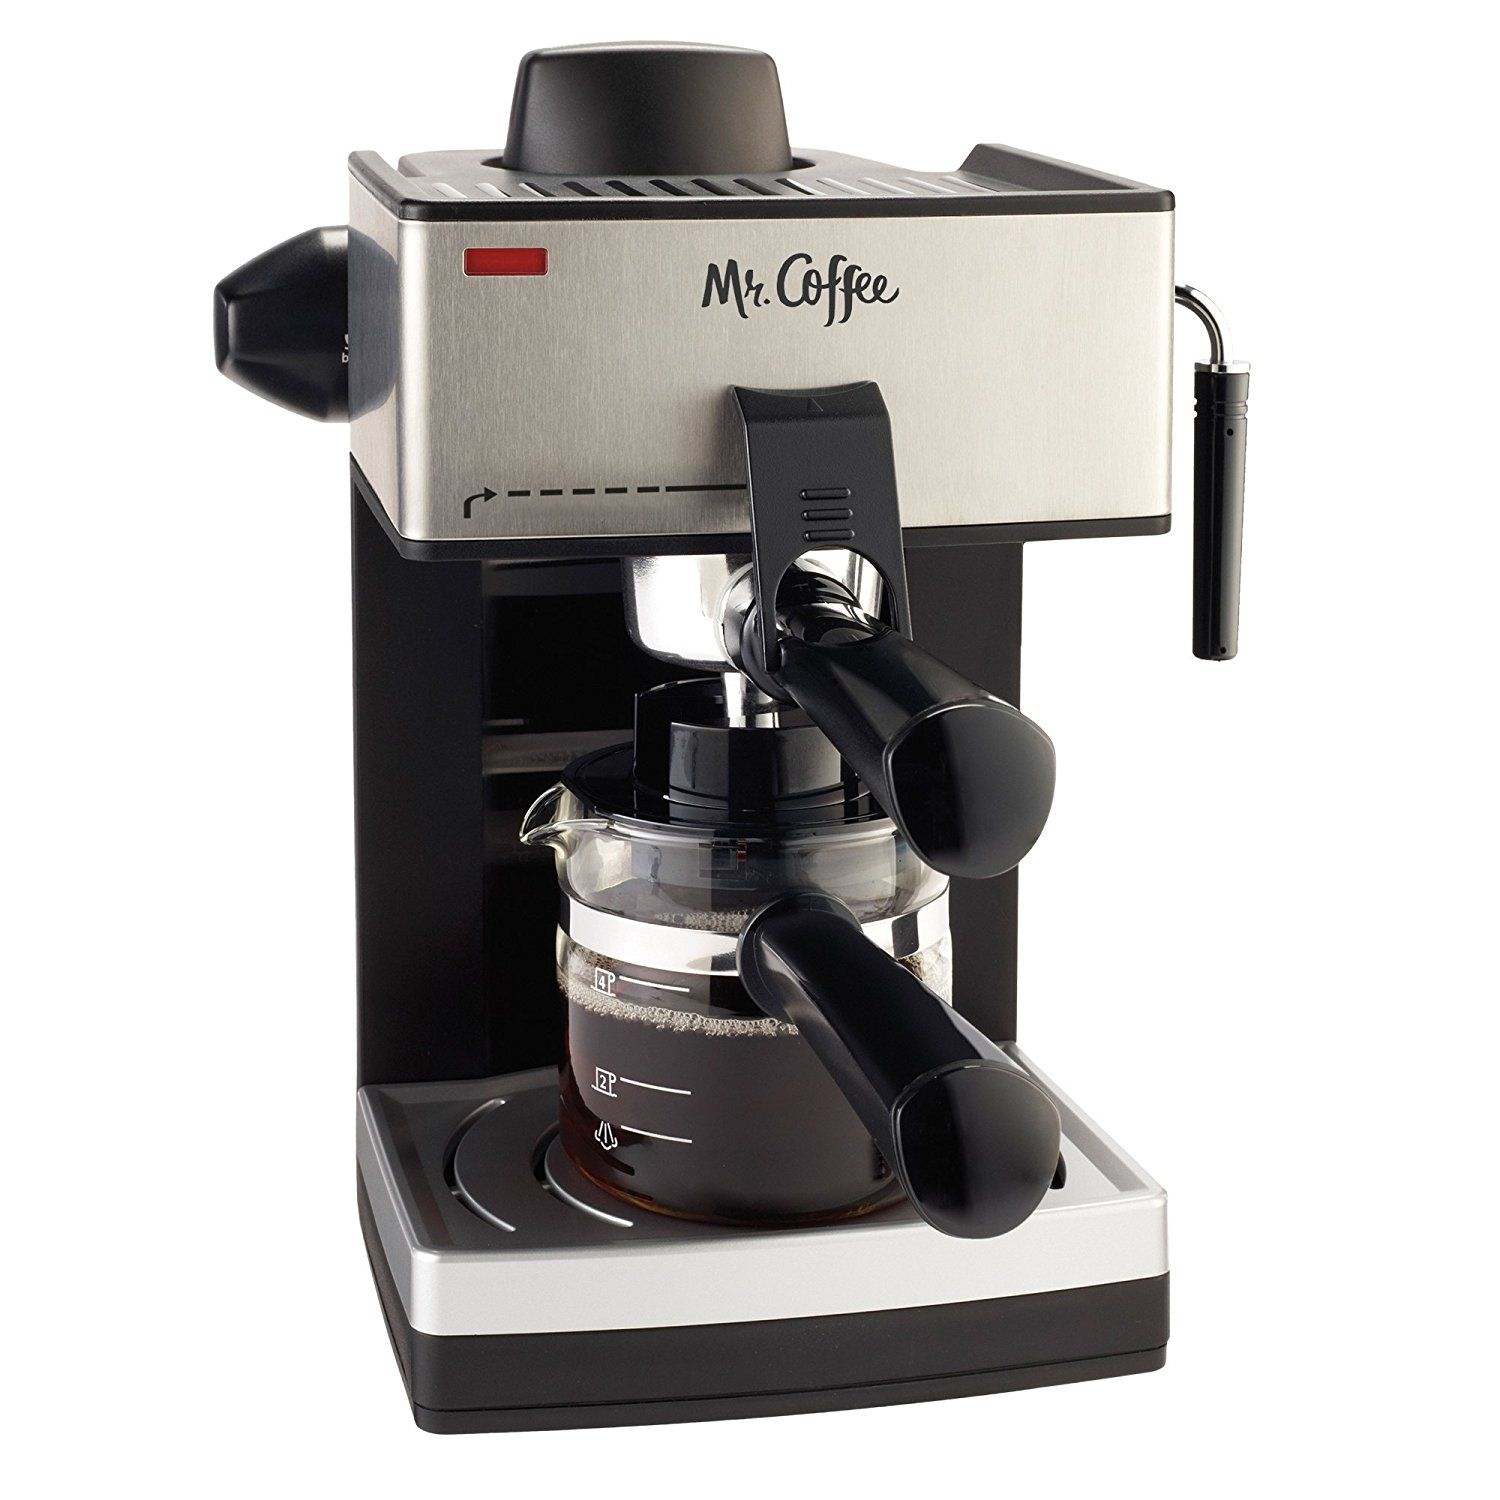 10 Best 4Cup Coffee Makers Reviewed in Detail (May 2020